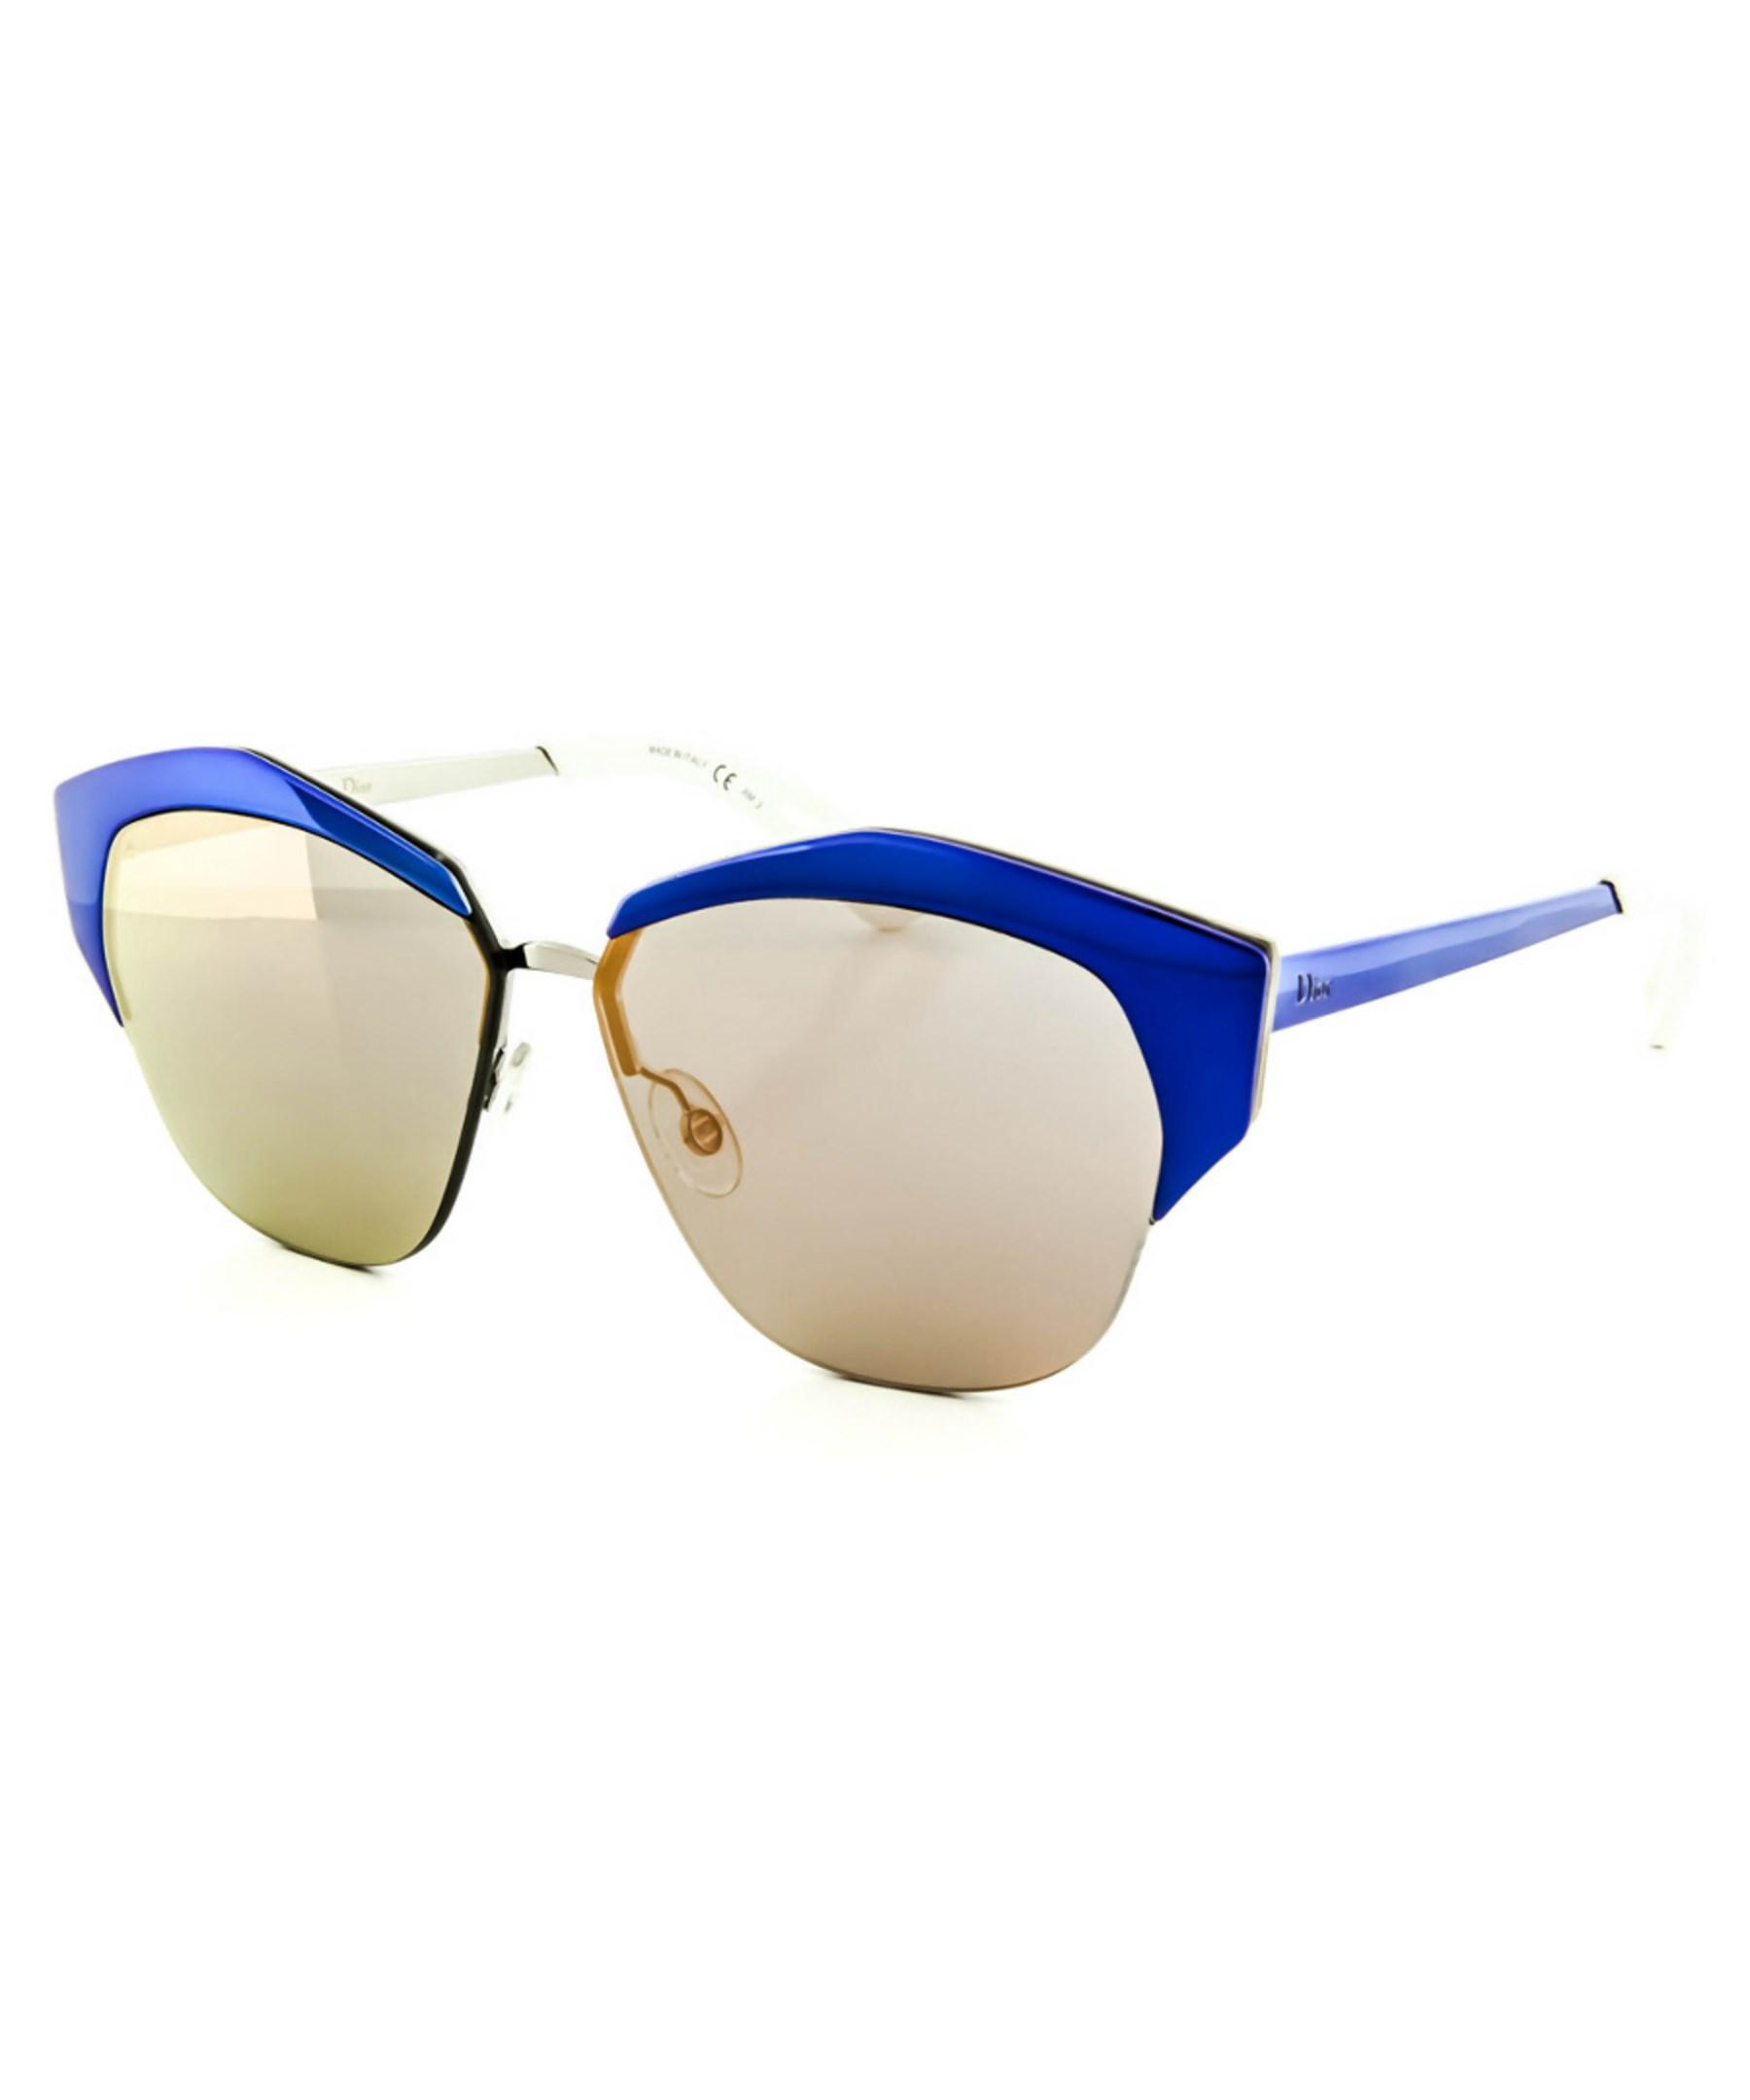 d792404add Gallery. Previously sold at  Bluefly · Women s Mirrored Sunglasses